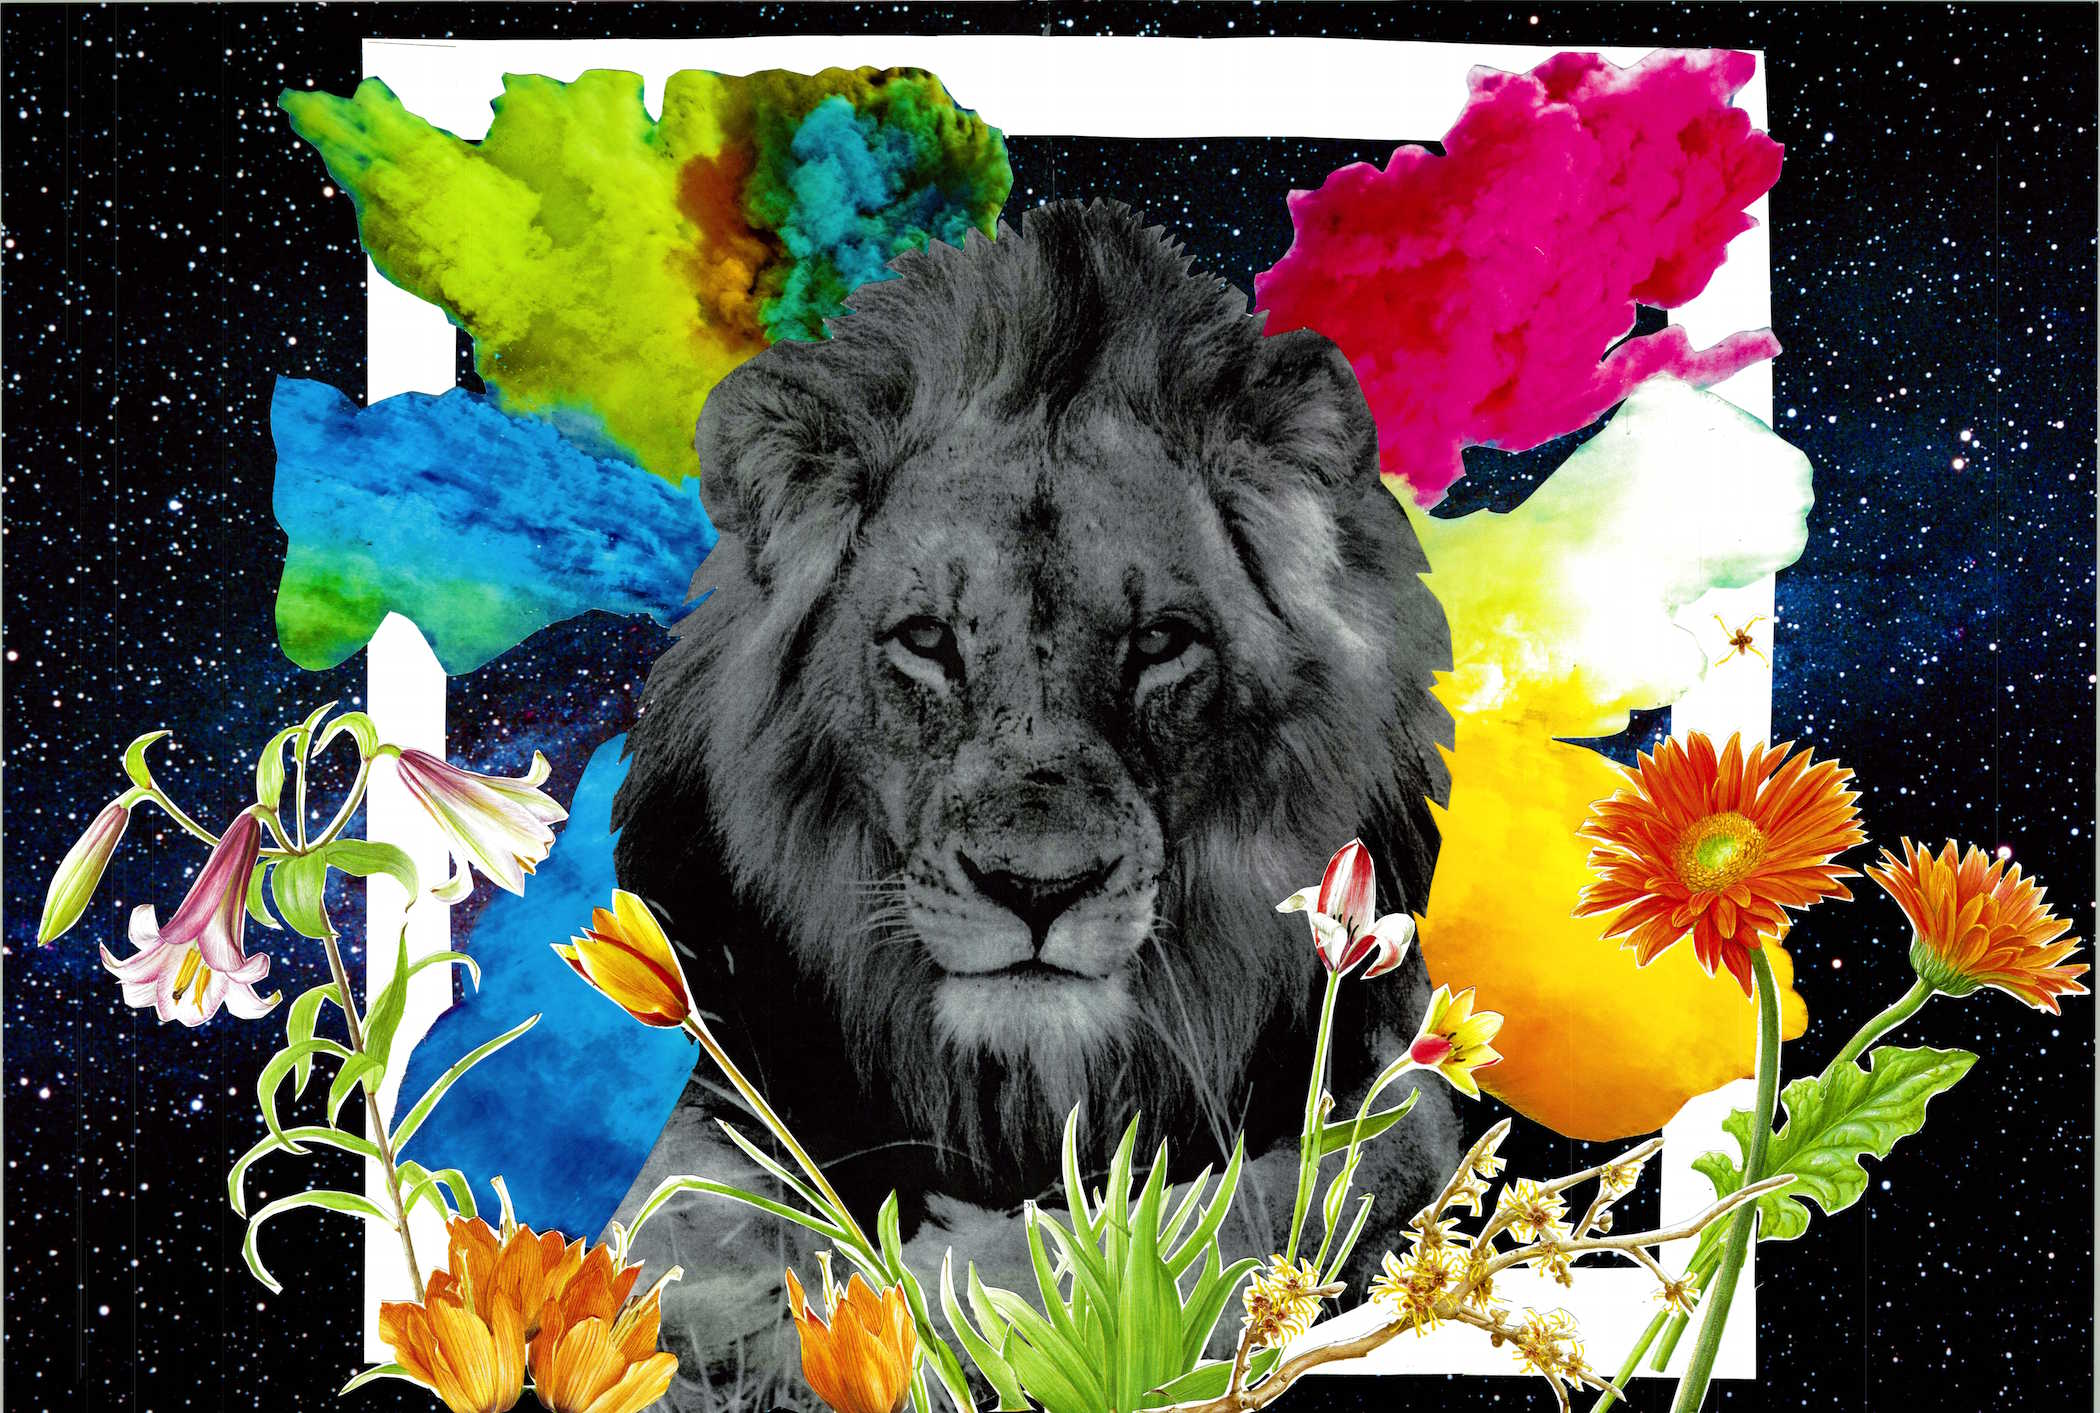 We are the Lions by Maghan McDowell.jpg